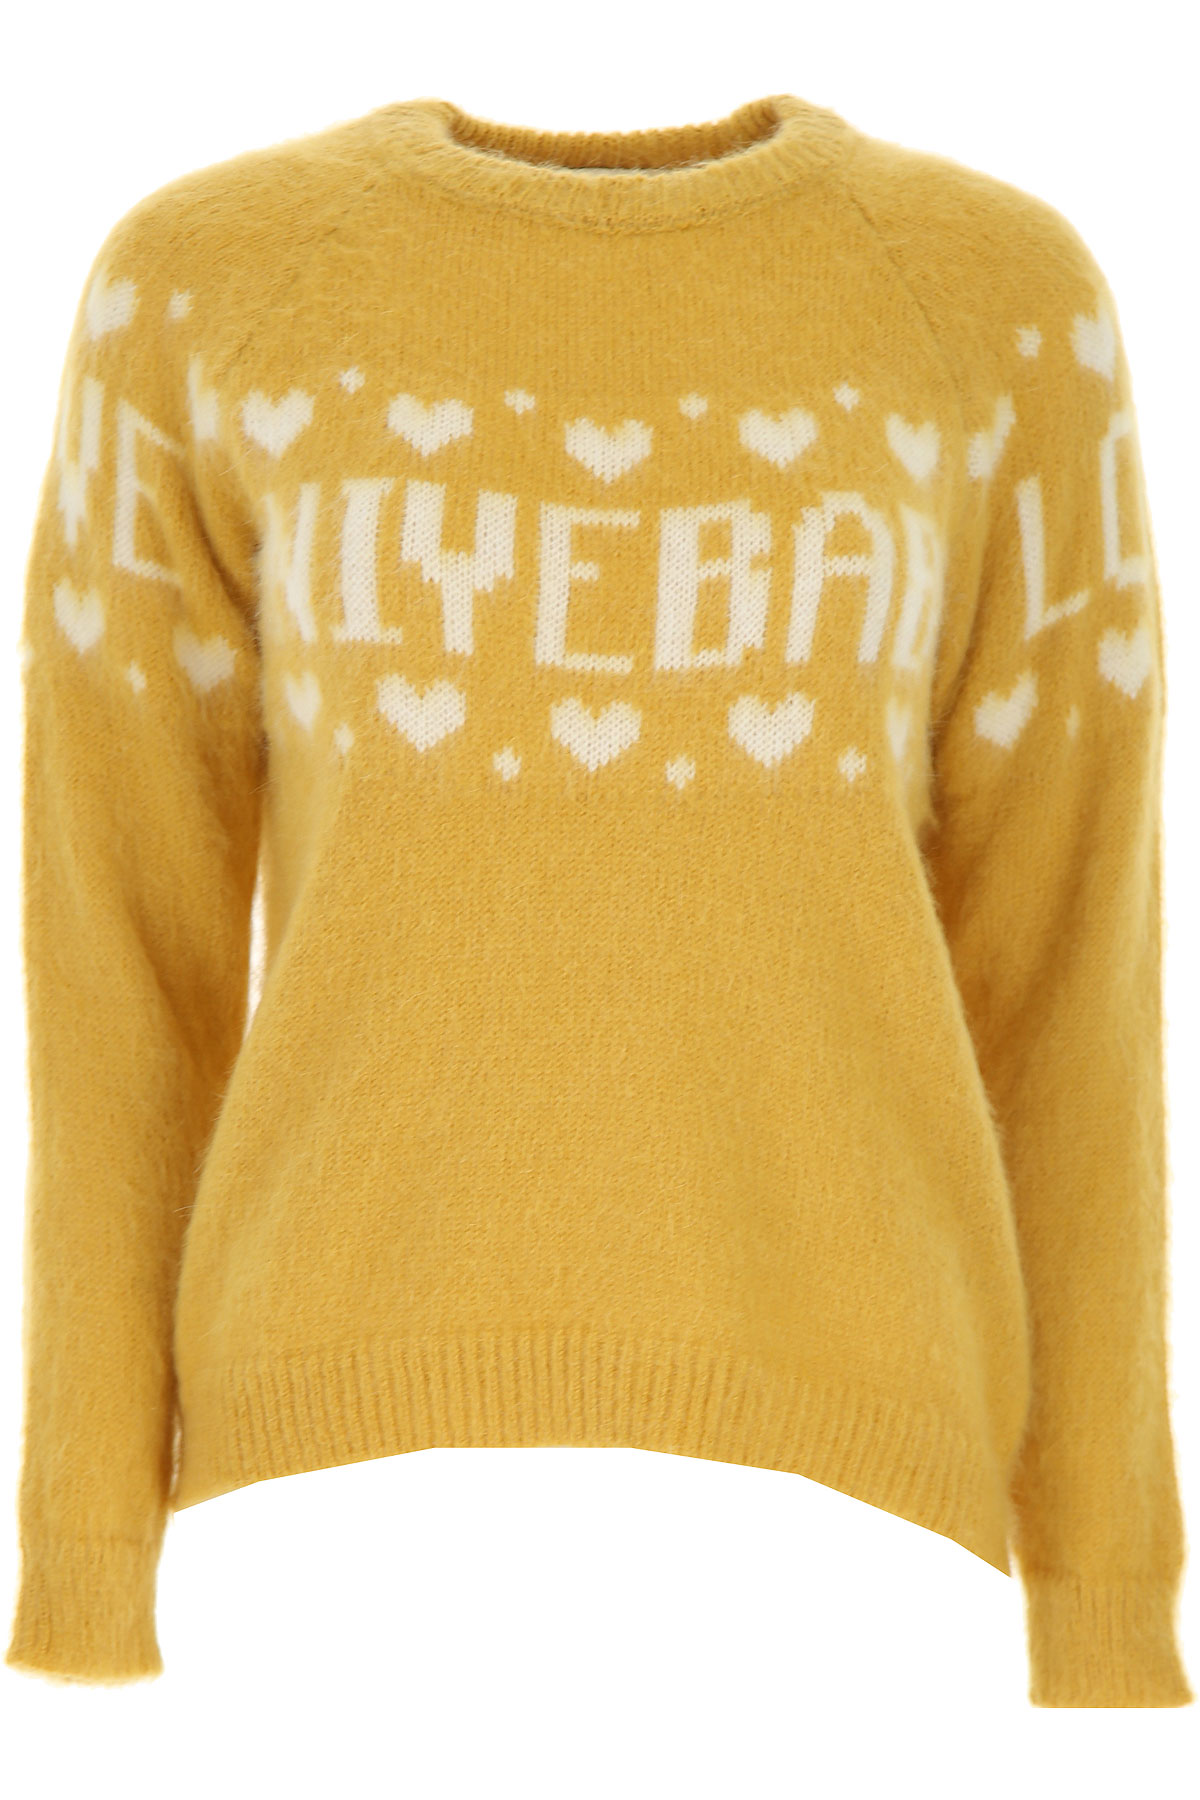 Aniye By Sweater for Women Jumper On Sale, Gold, Acrylic, 2019, 4 6